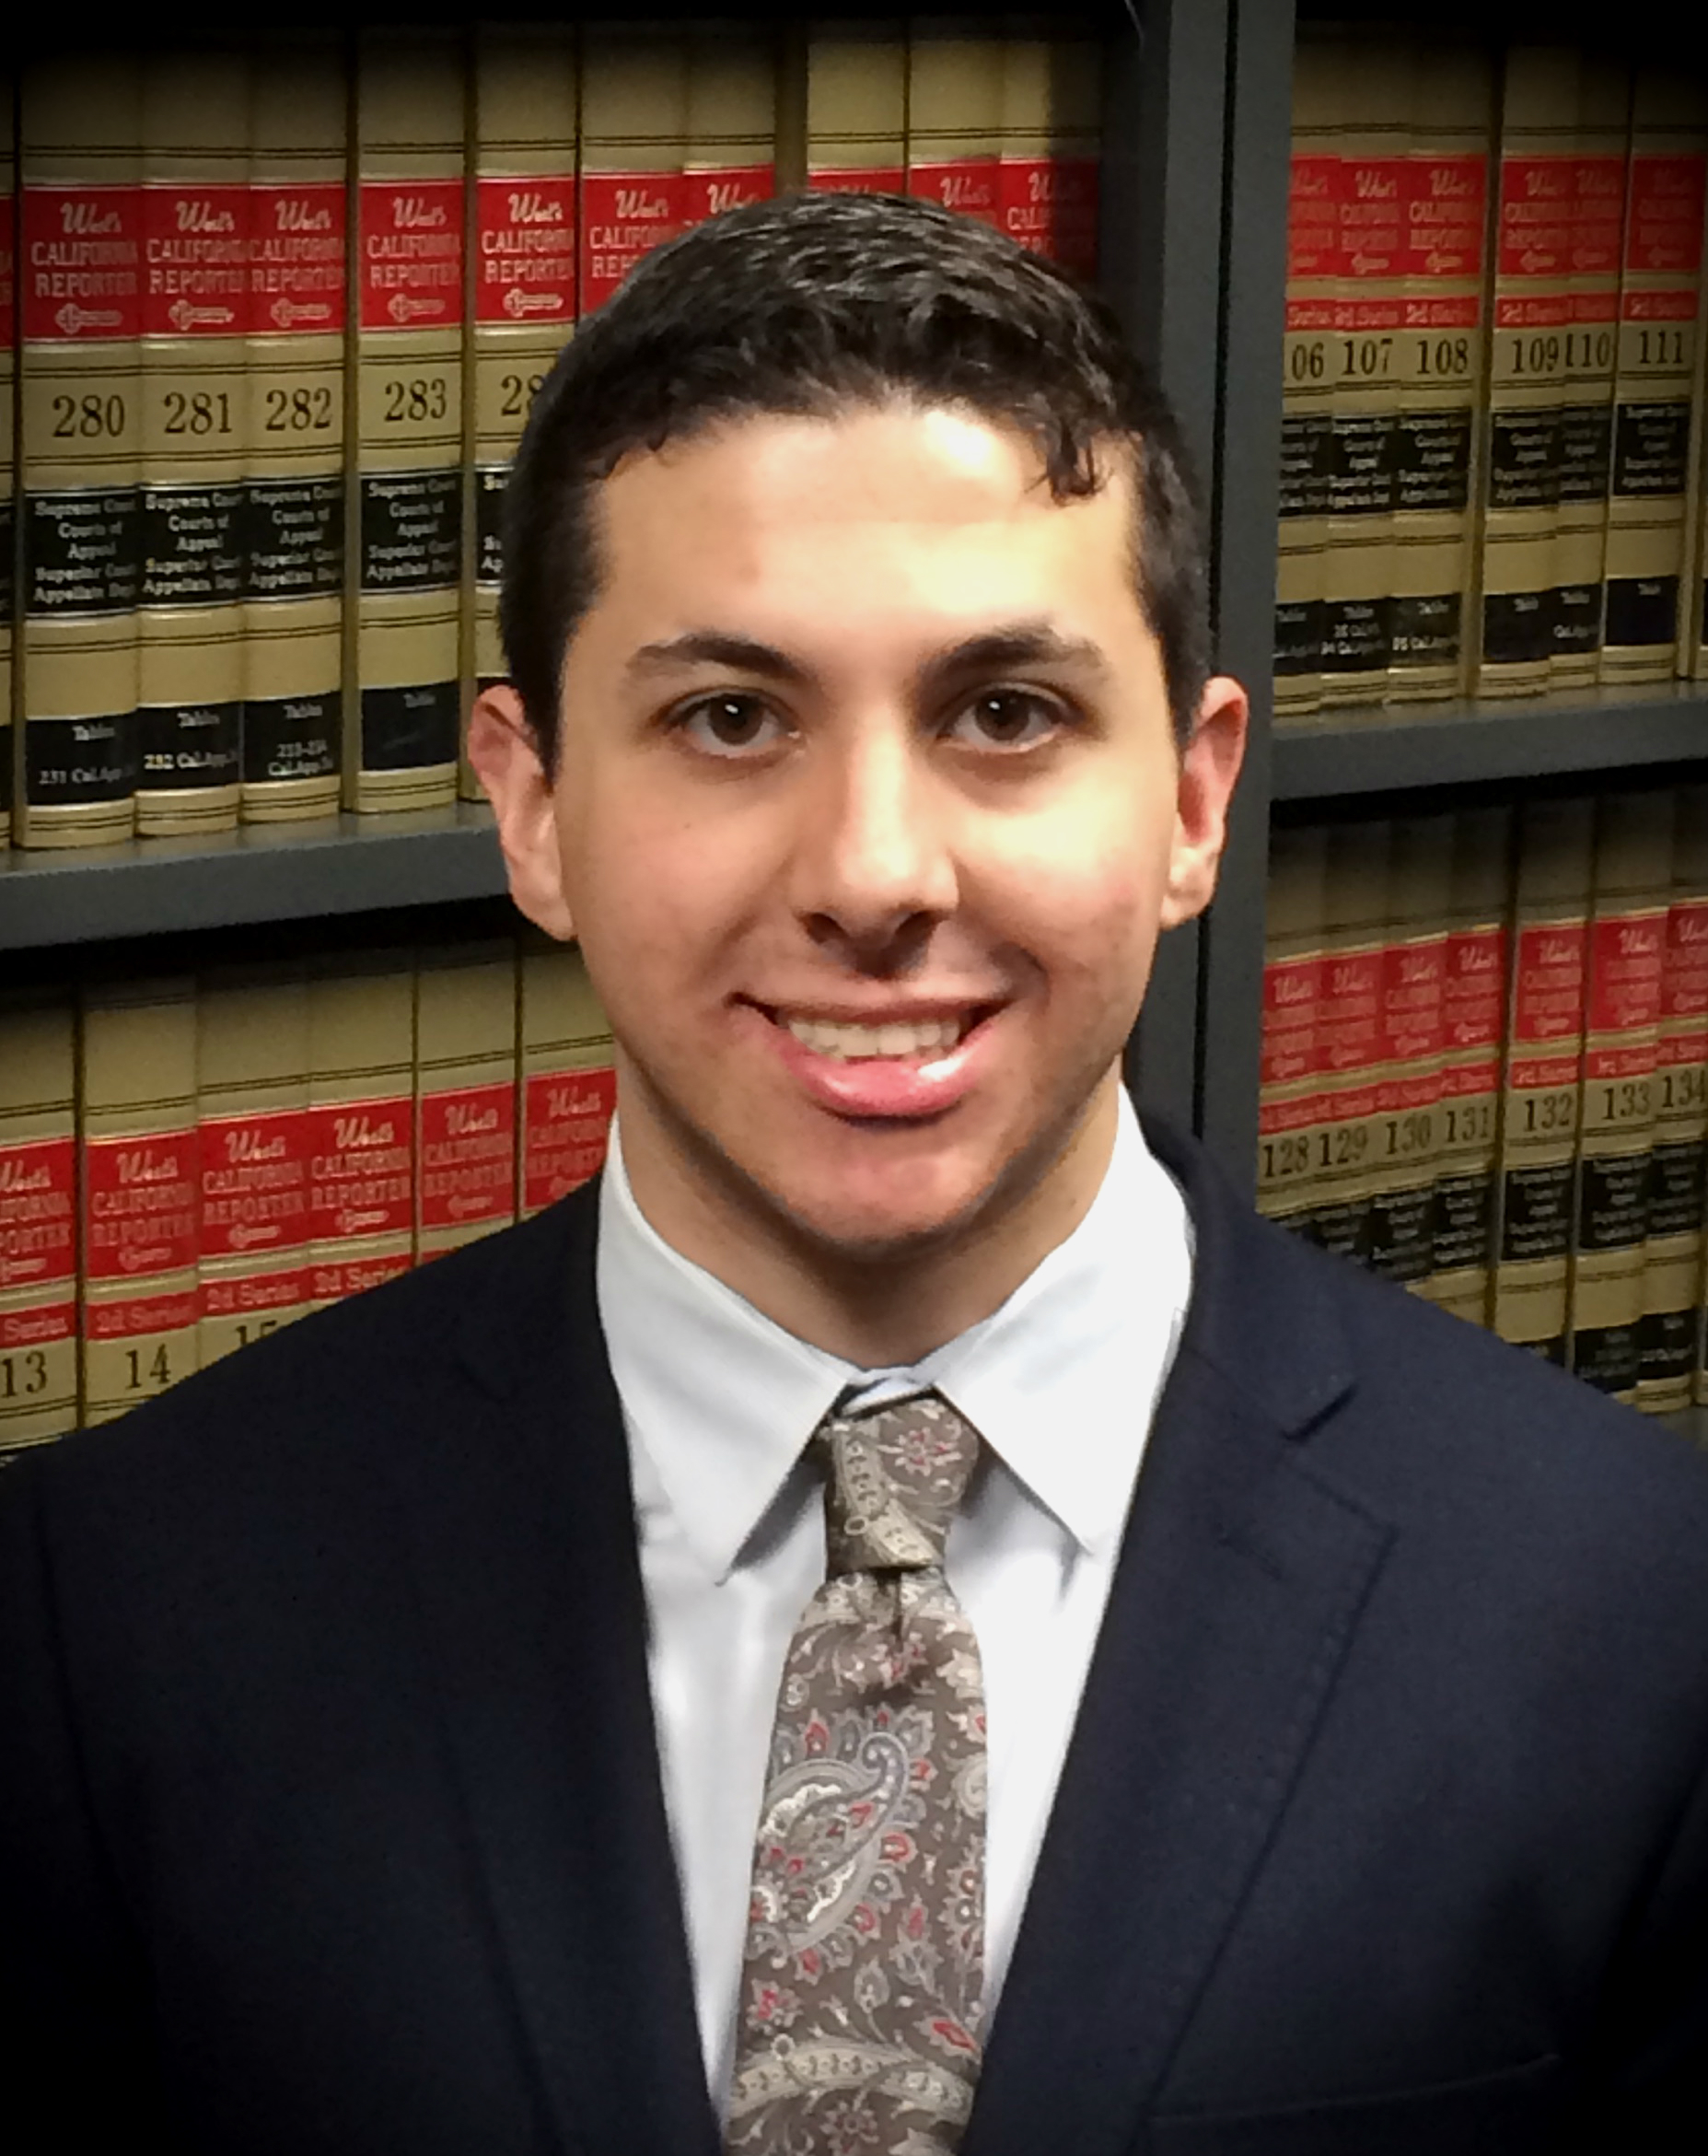 Gus N. Paras, The Scali Law Firm